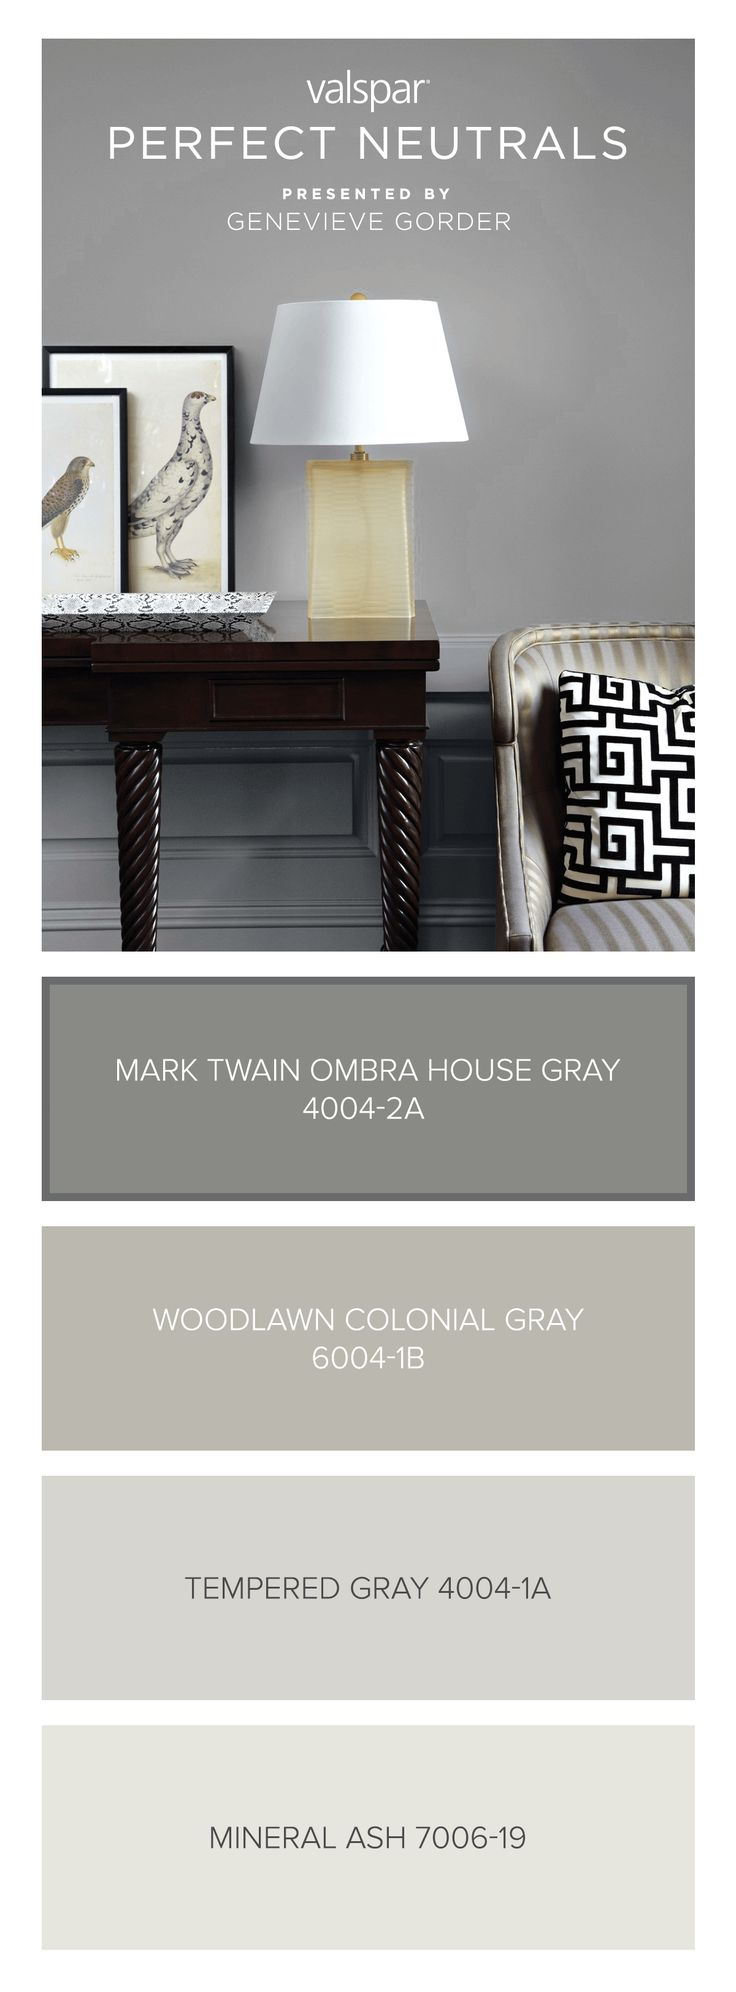 Hereu0027s A Tip From Genevieve Gorder: Mark Twain House Ombra Gray 4004 2A Is